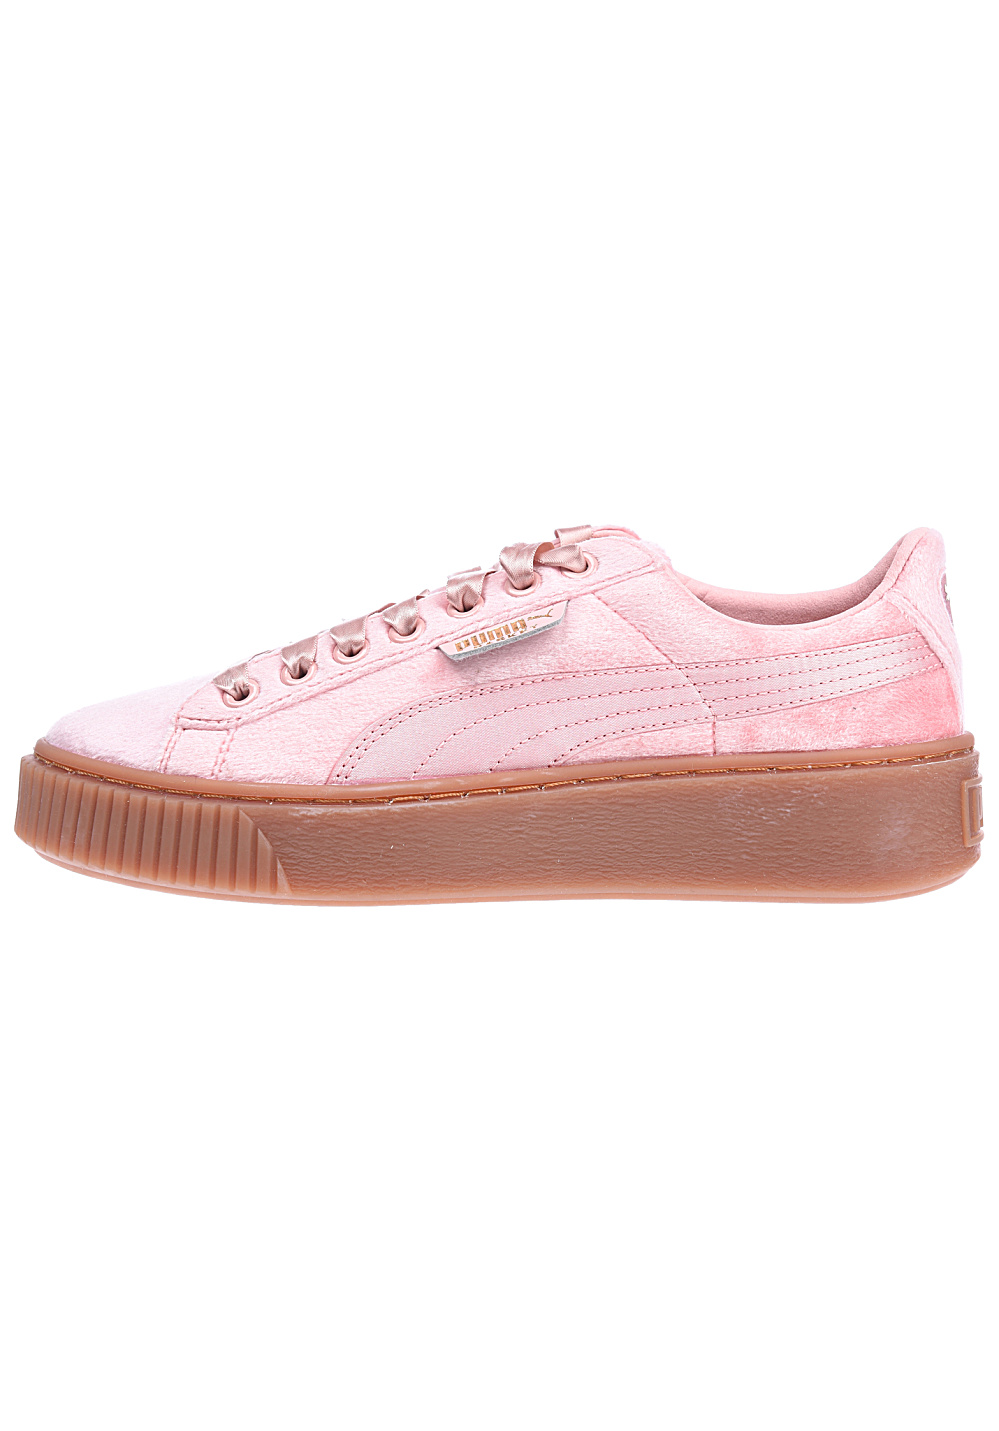 huge sale b986c bc280 Puma Basket Platform VS - Sneakers for Women - Pink